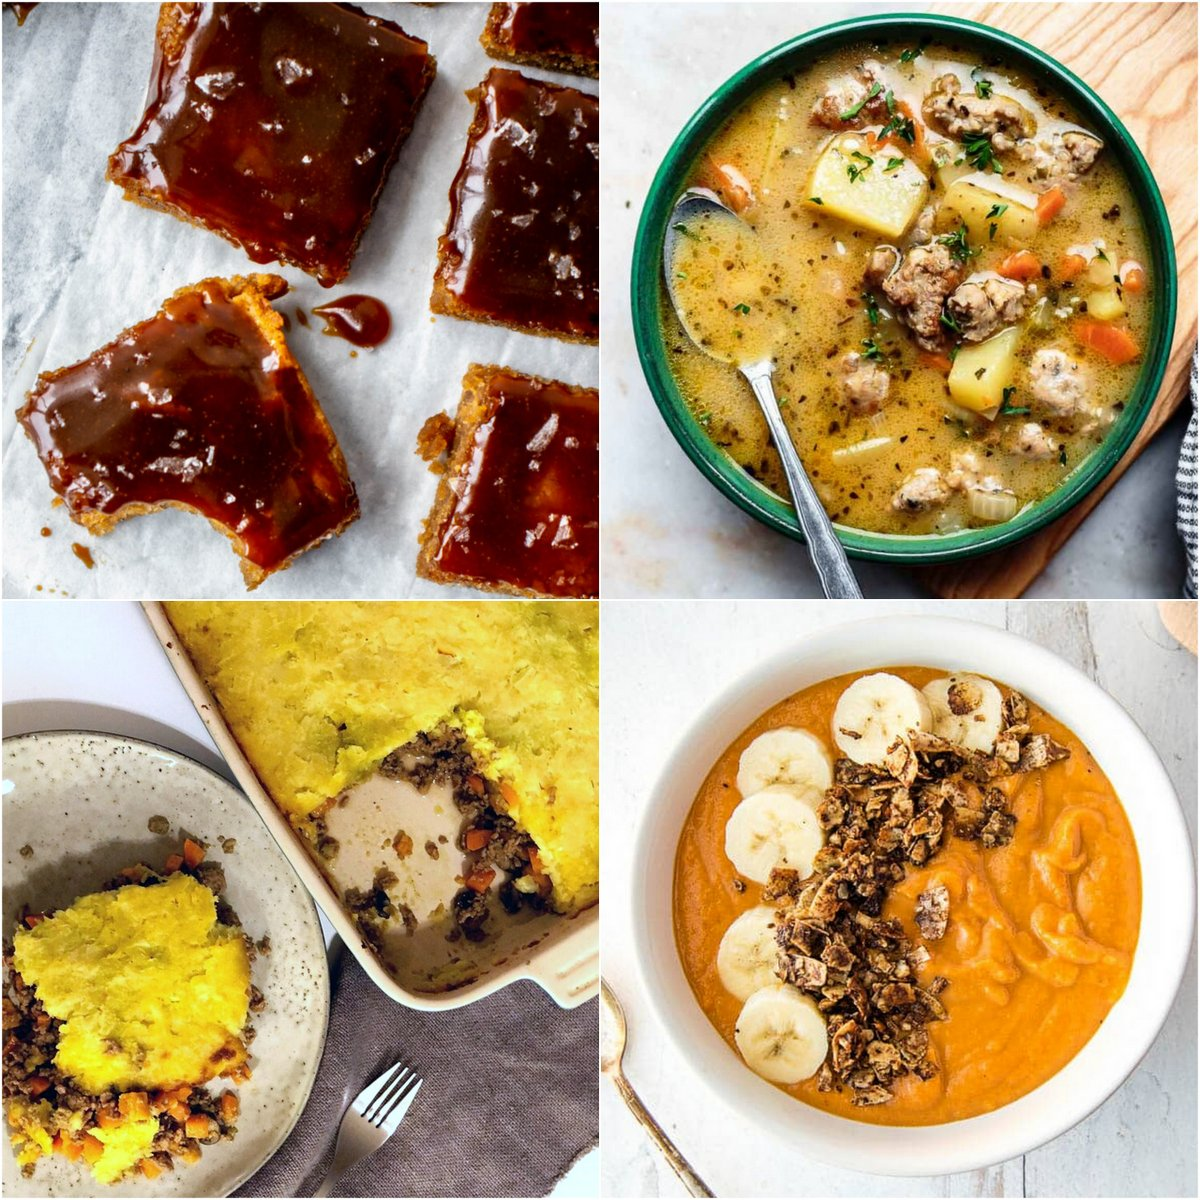 Paleo AIP Recipe Roundtable #357 | Phoenix Helix - *Featured Recipes: Salted Caramel Blondies, Creamy Sausage Potato Soup, Sweet Potato Breakfast Bowl, and Shepherd's Pie.